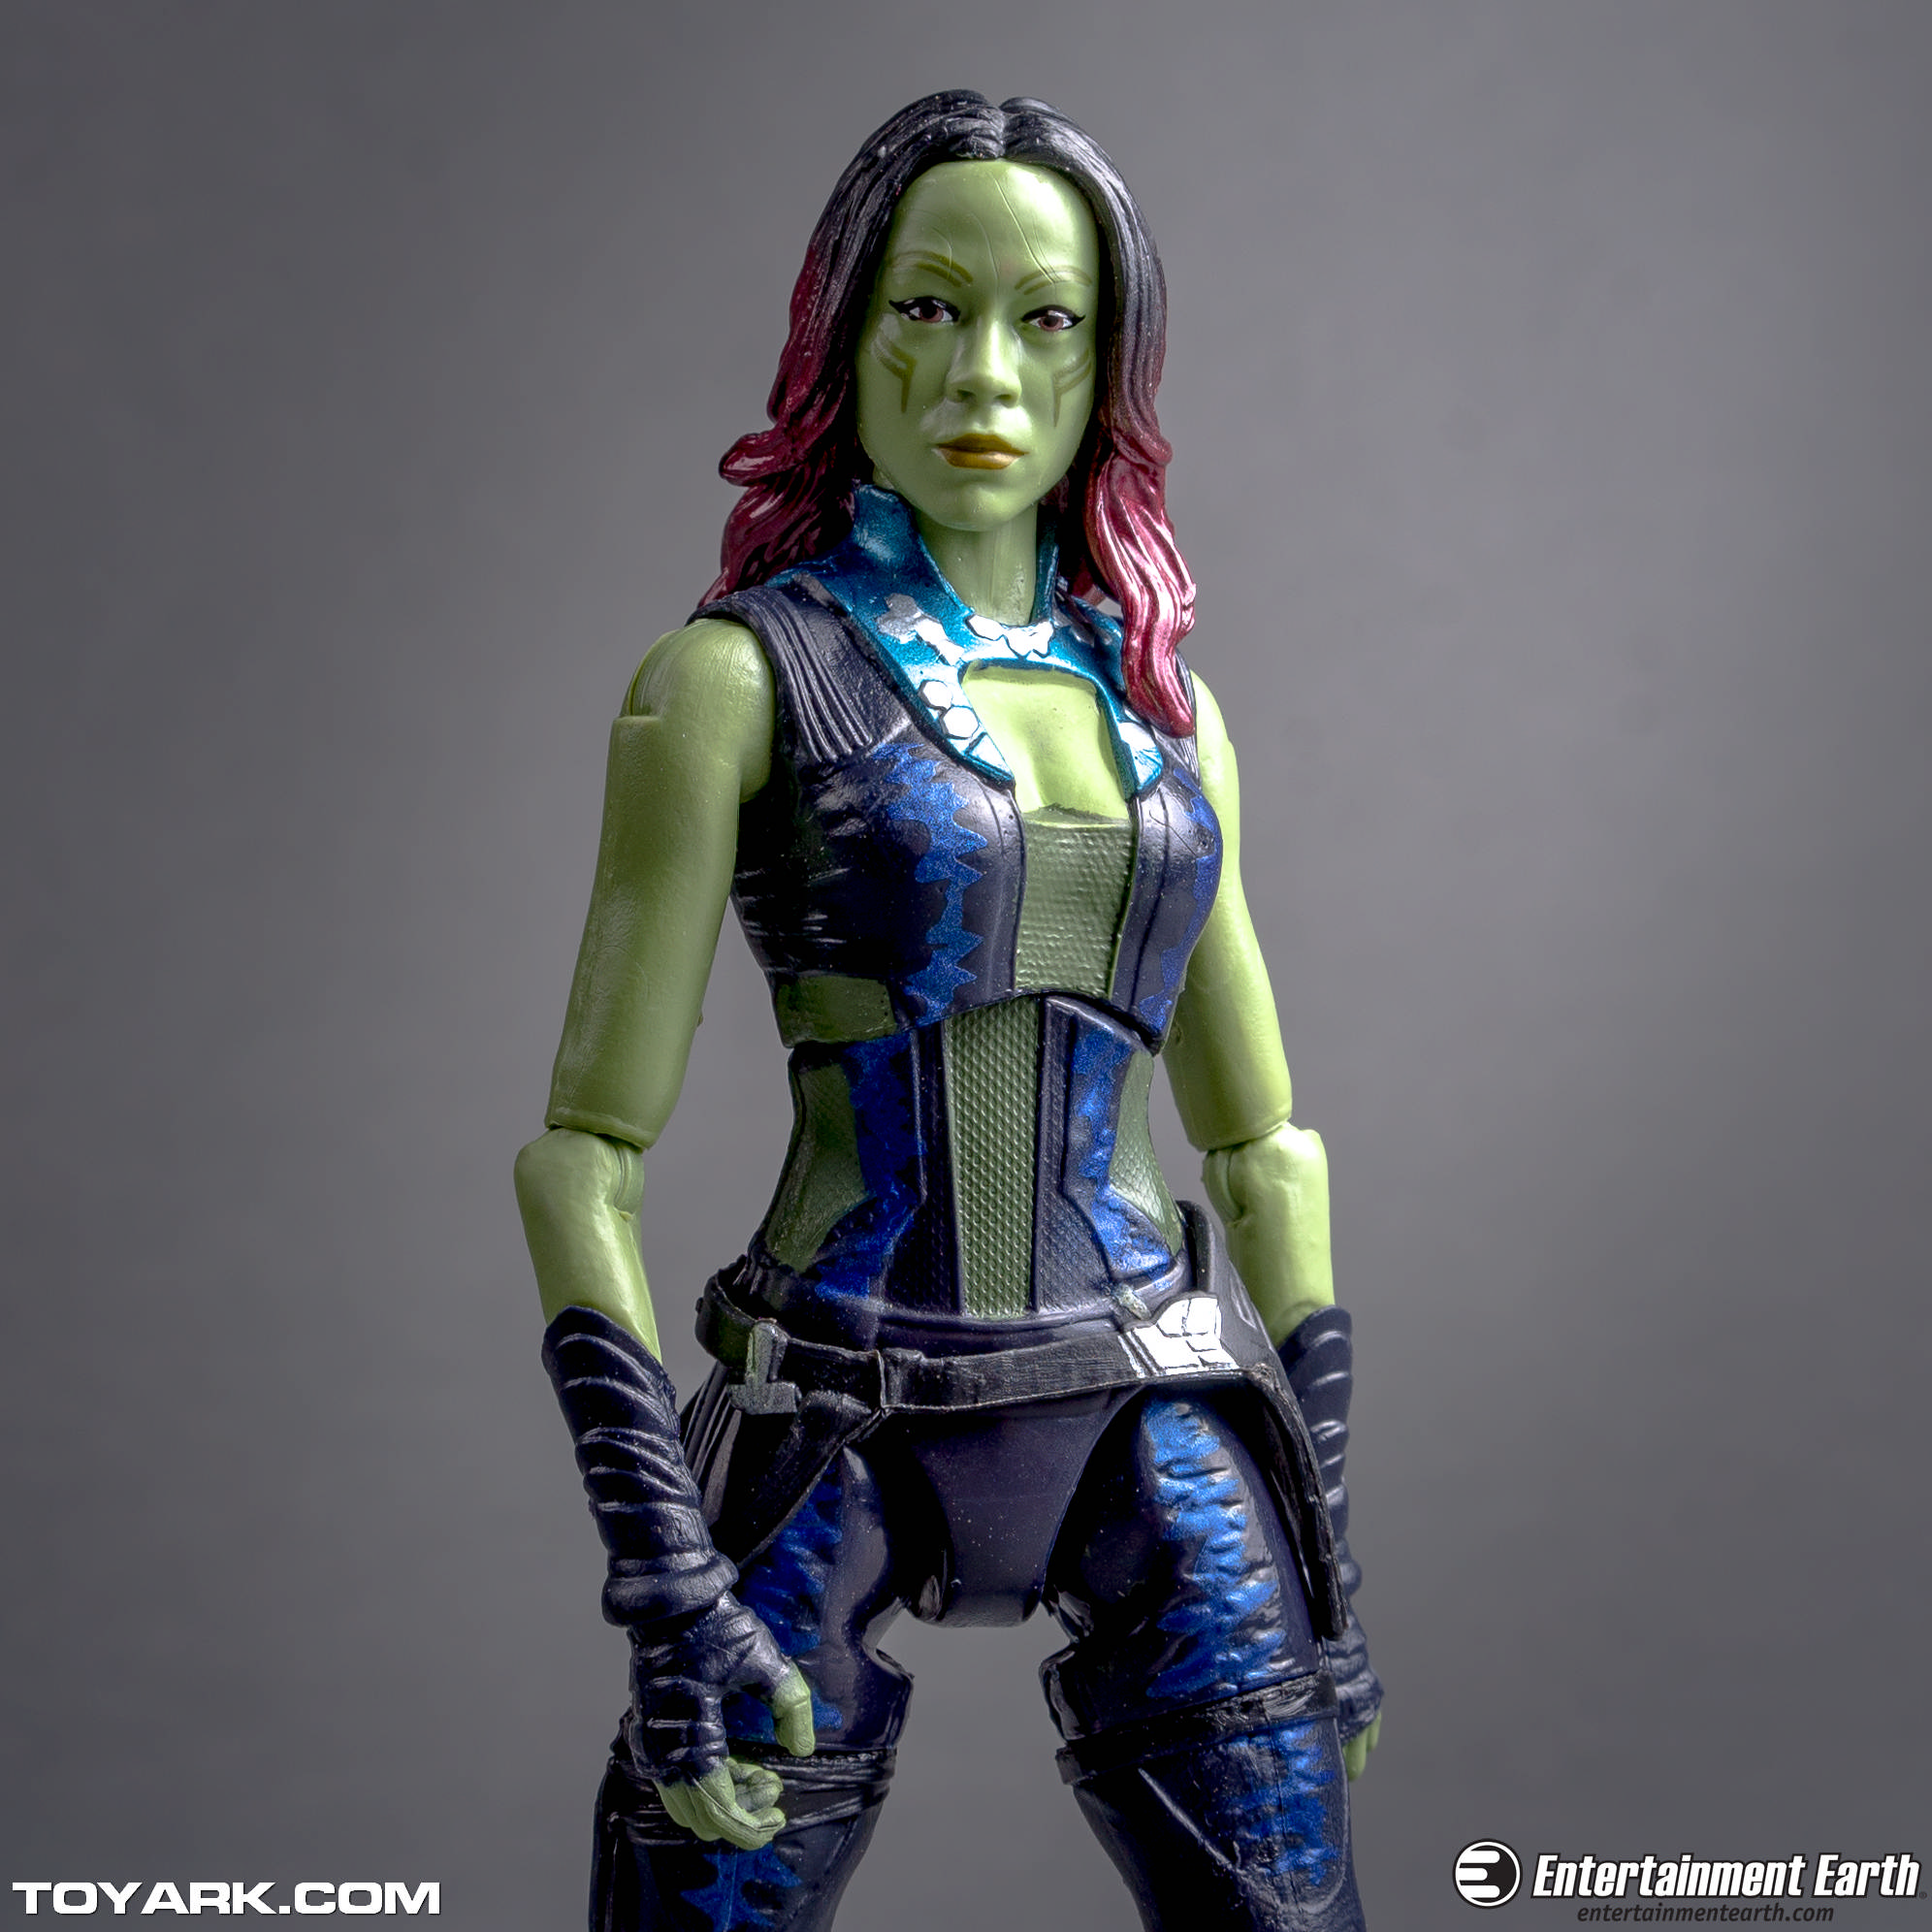 Gamora's sculpt is pretty well done.